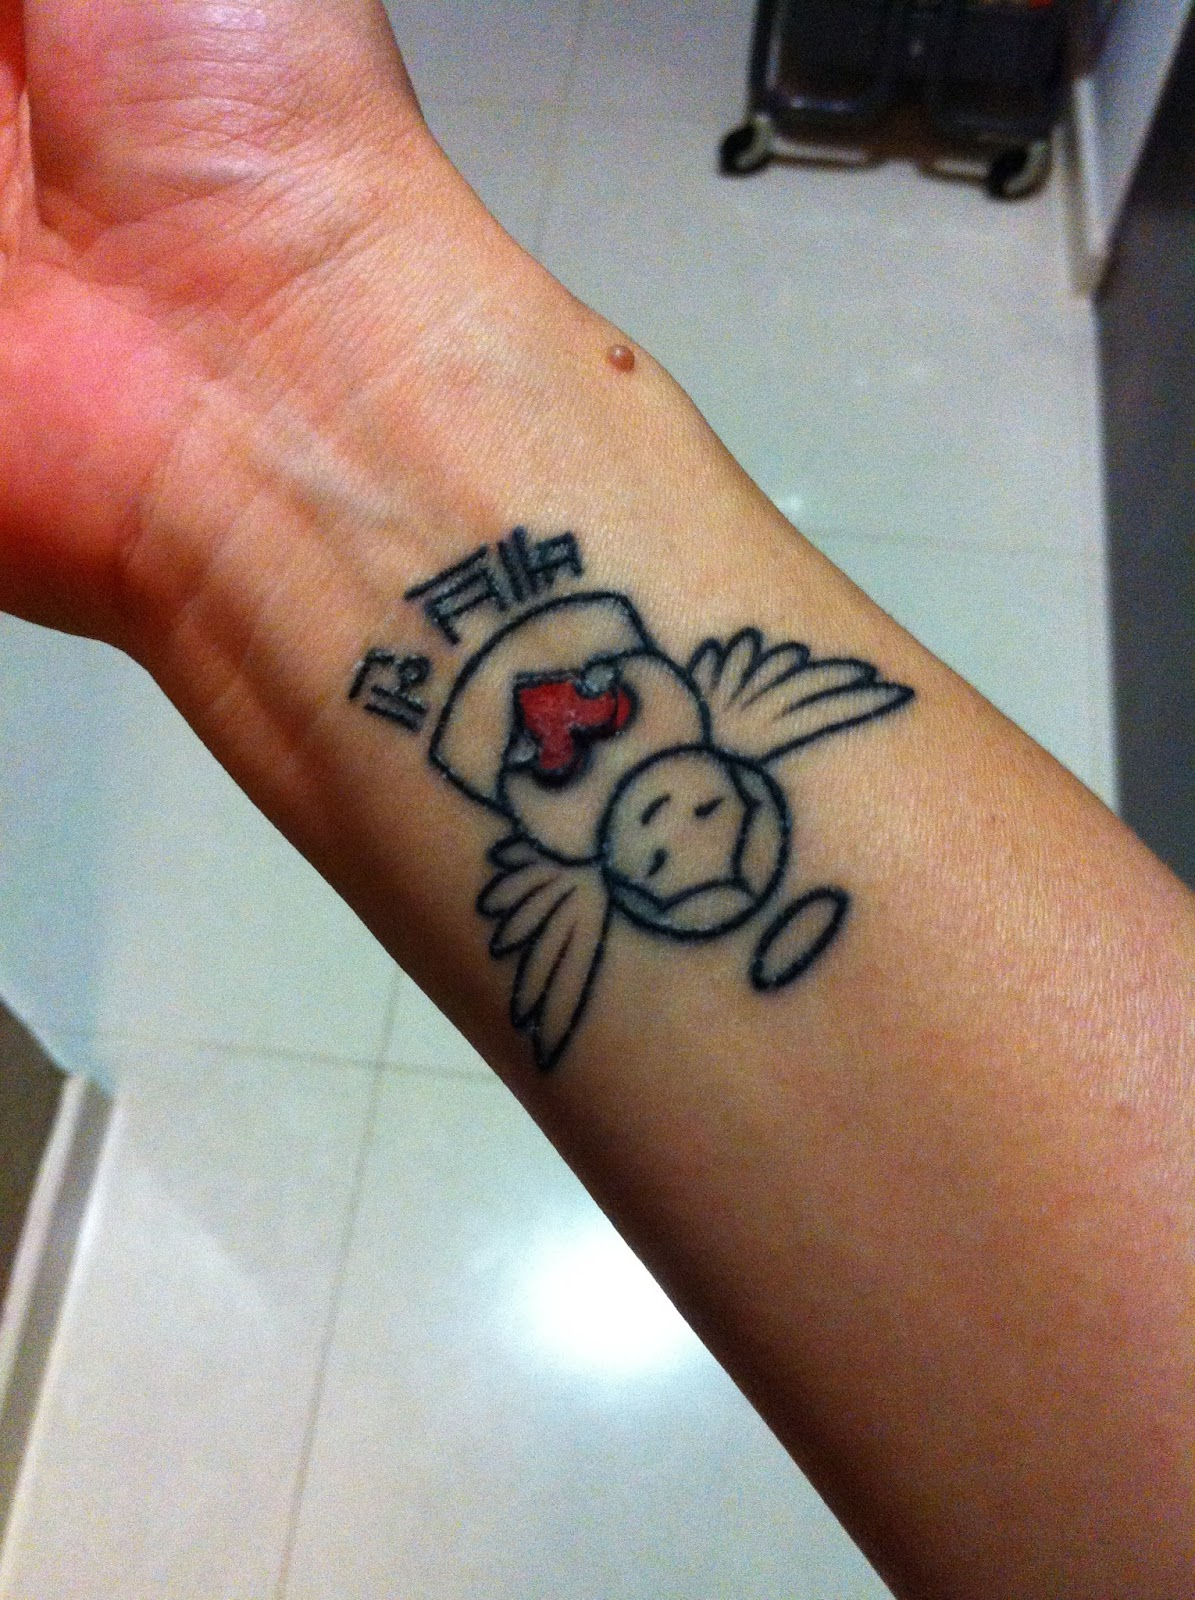 My 2 Cents Worth: Getting A Tattoo (for The First Time